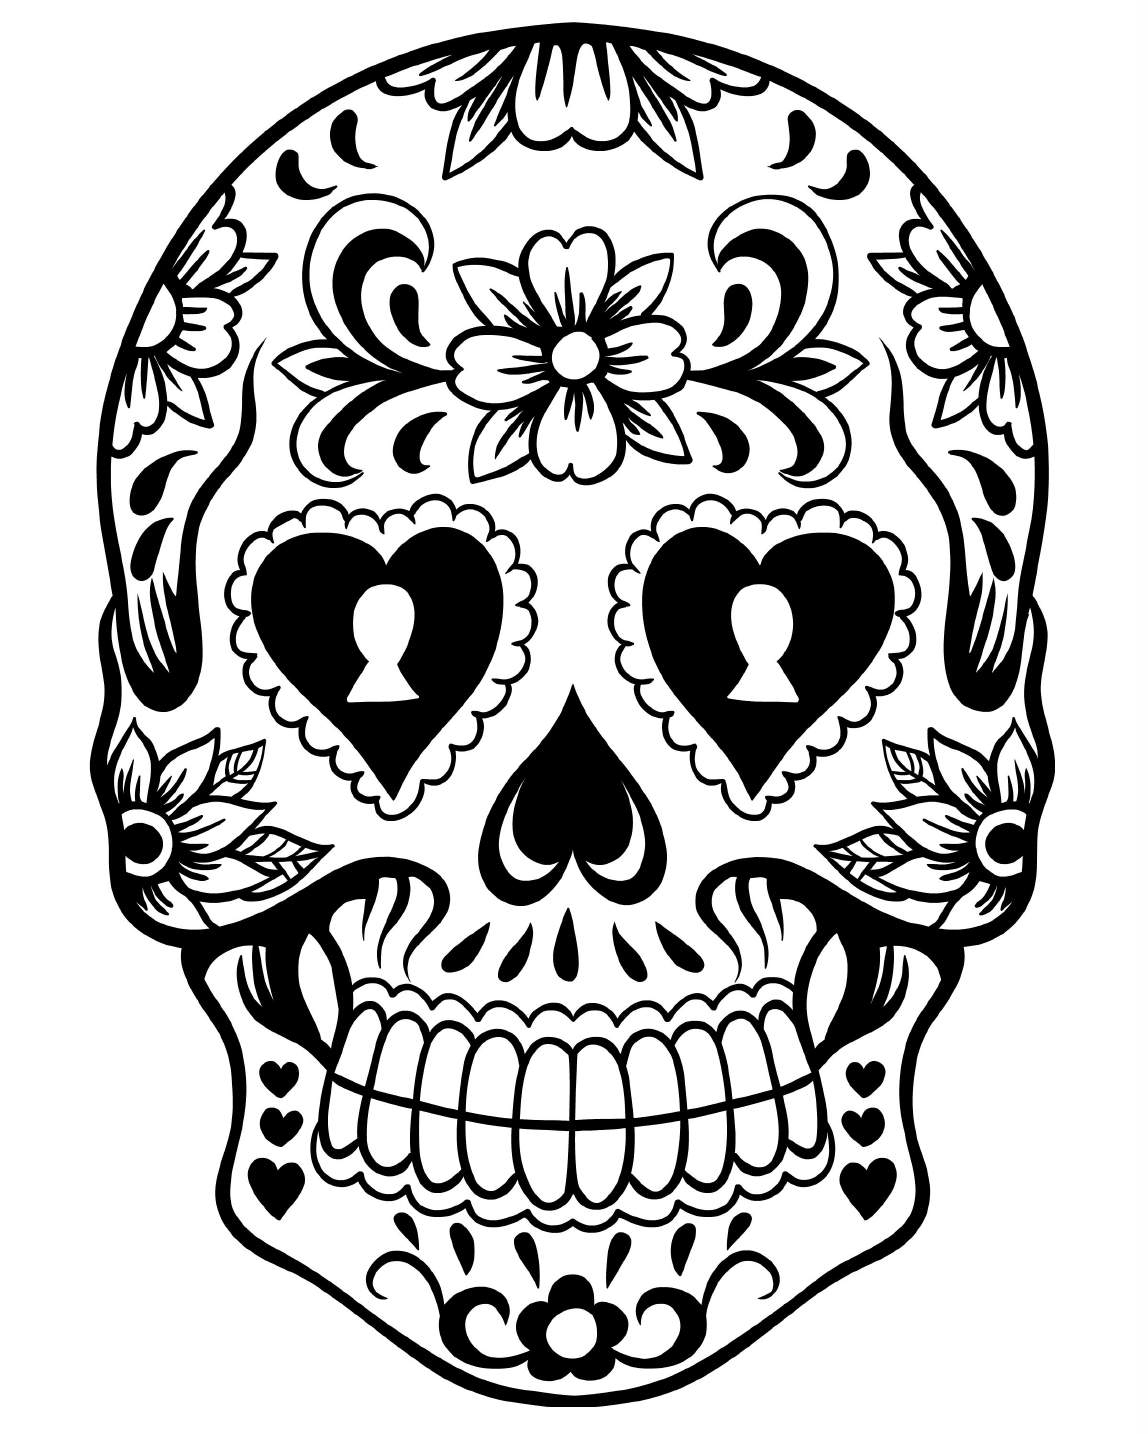 coloring skull drawing coloring day of the dead skull printable skulls coloring pages for kids coloring drawing dead of day skull coloring the skull